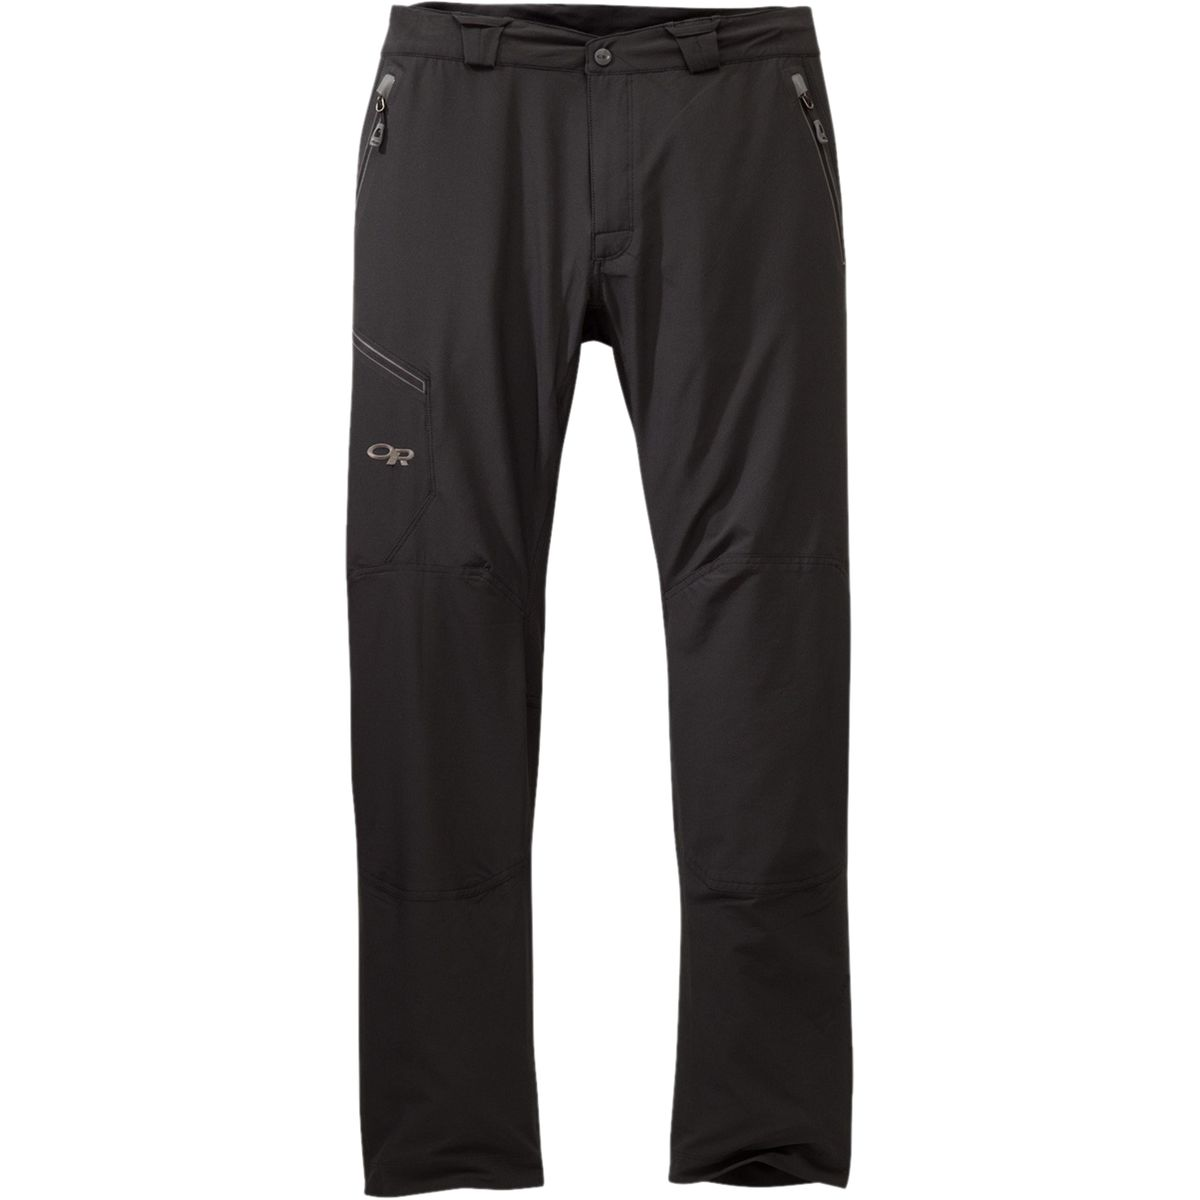 Outdoor Research Prusik Softshell Pant - Men